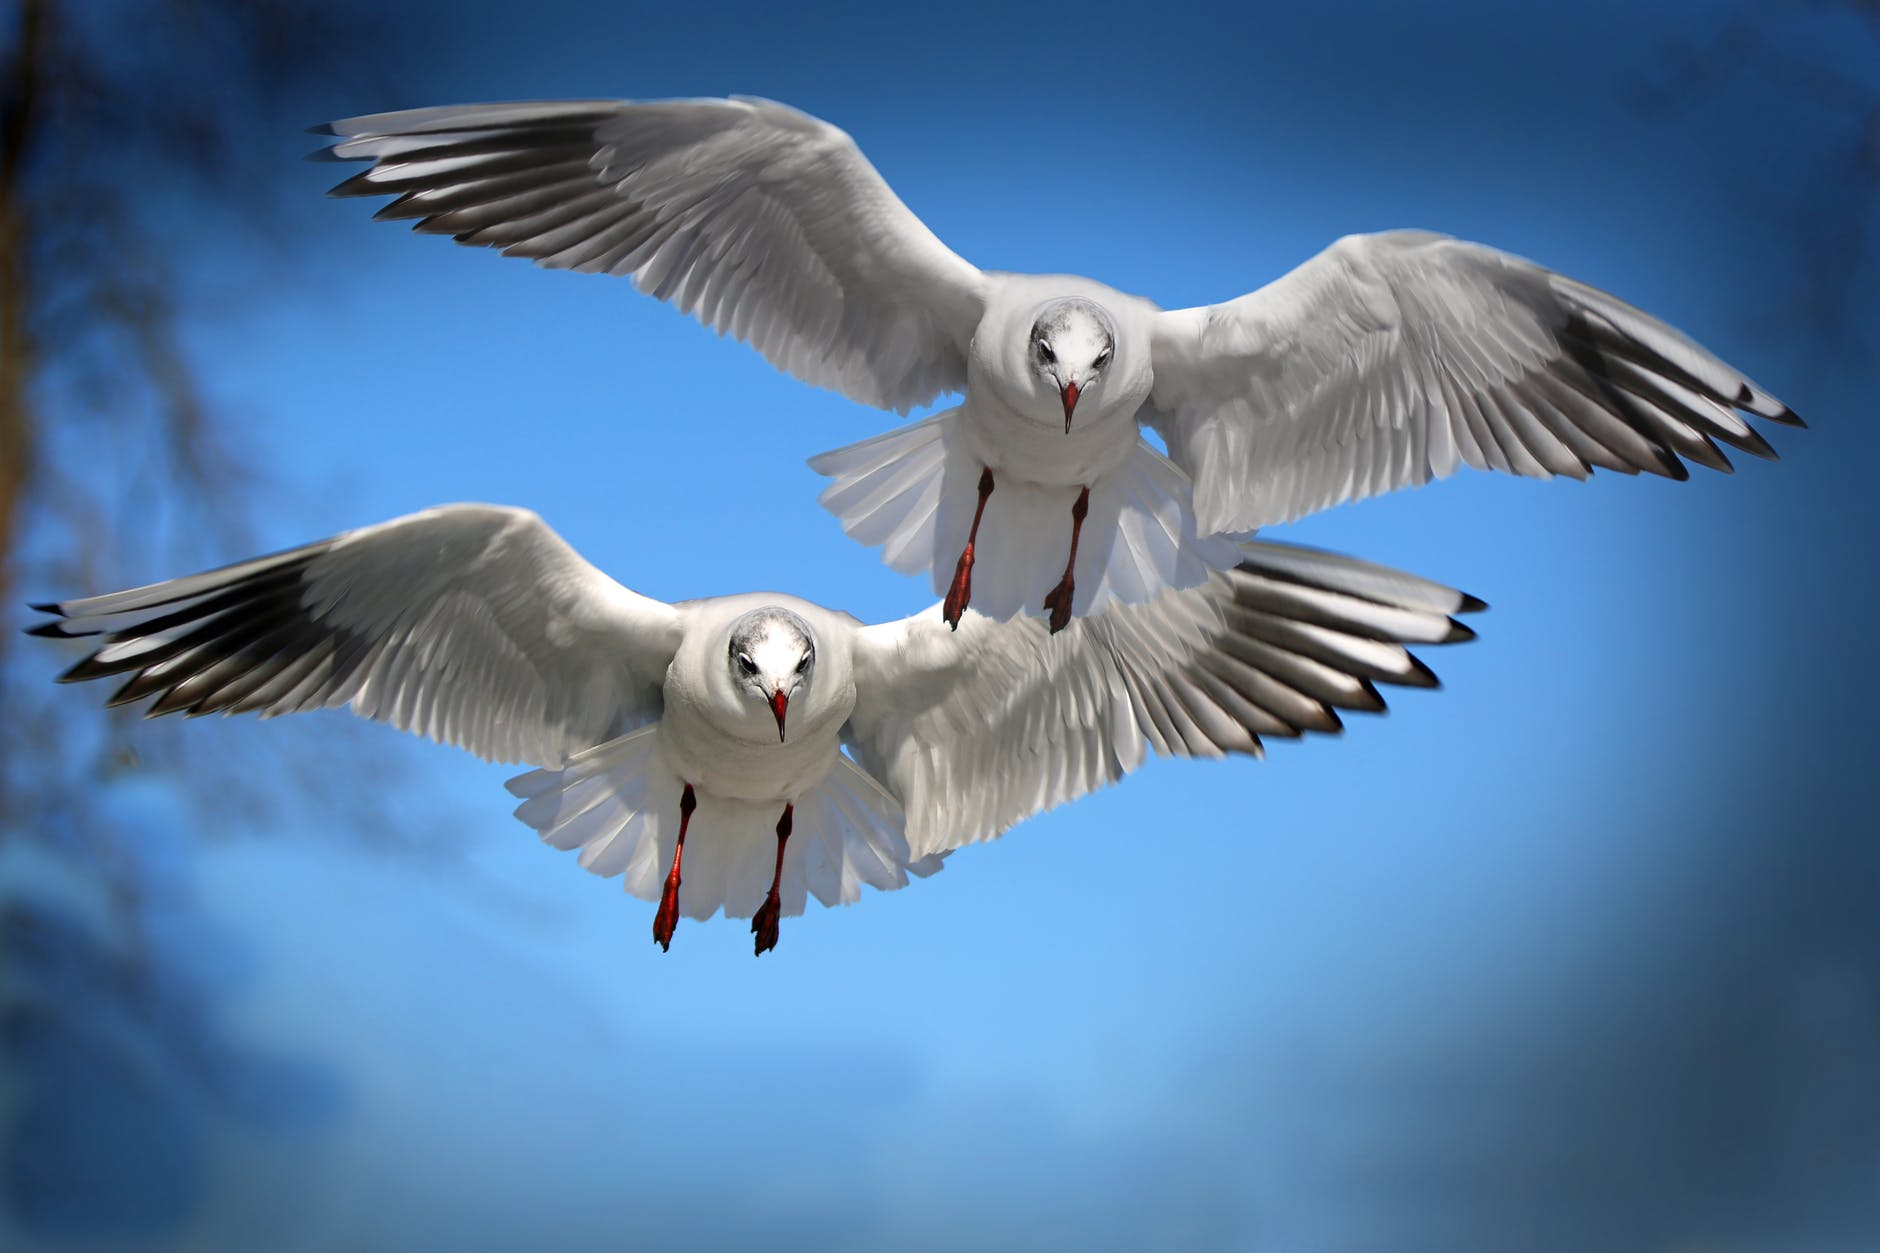 two white and black bird flying during daytime